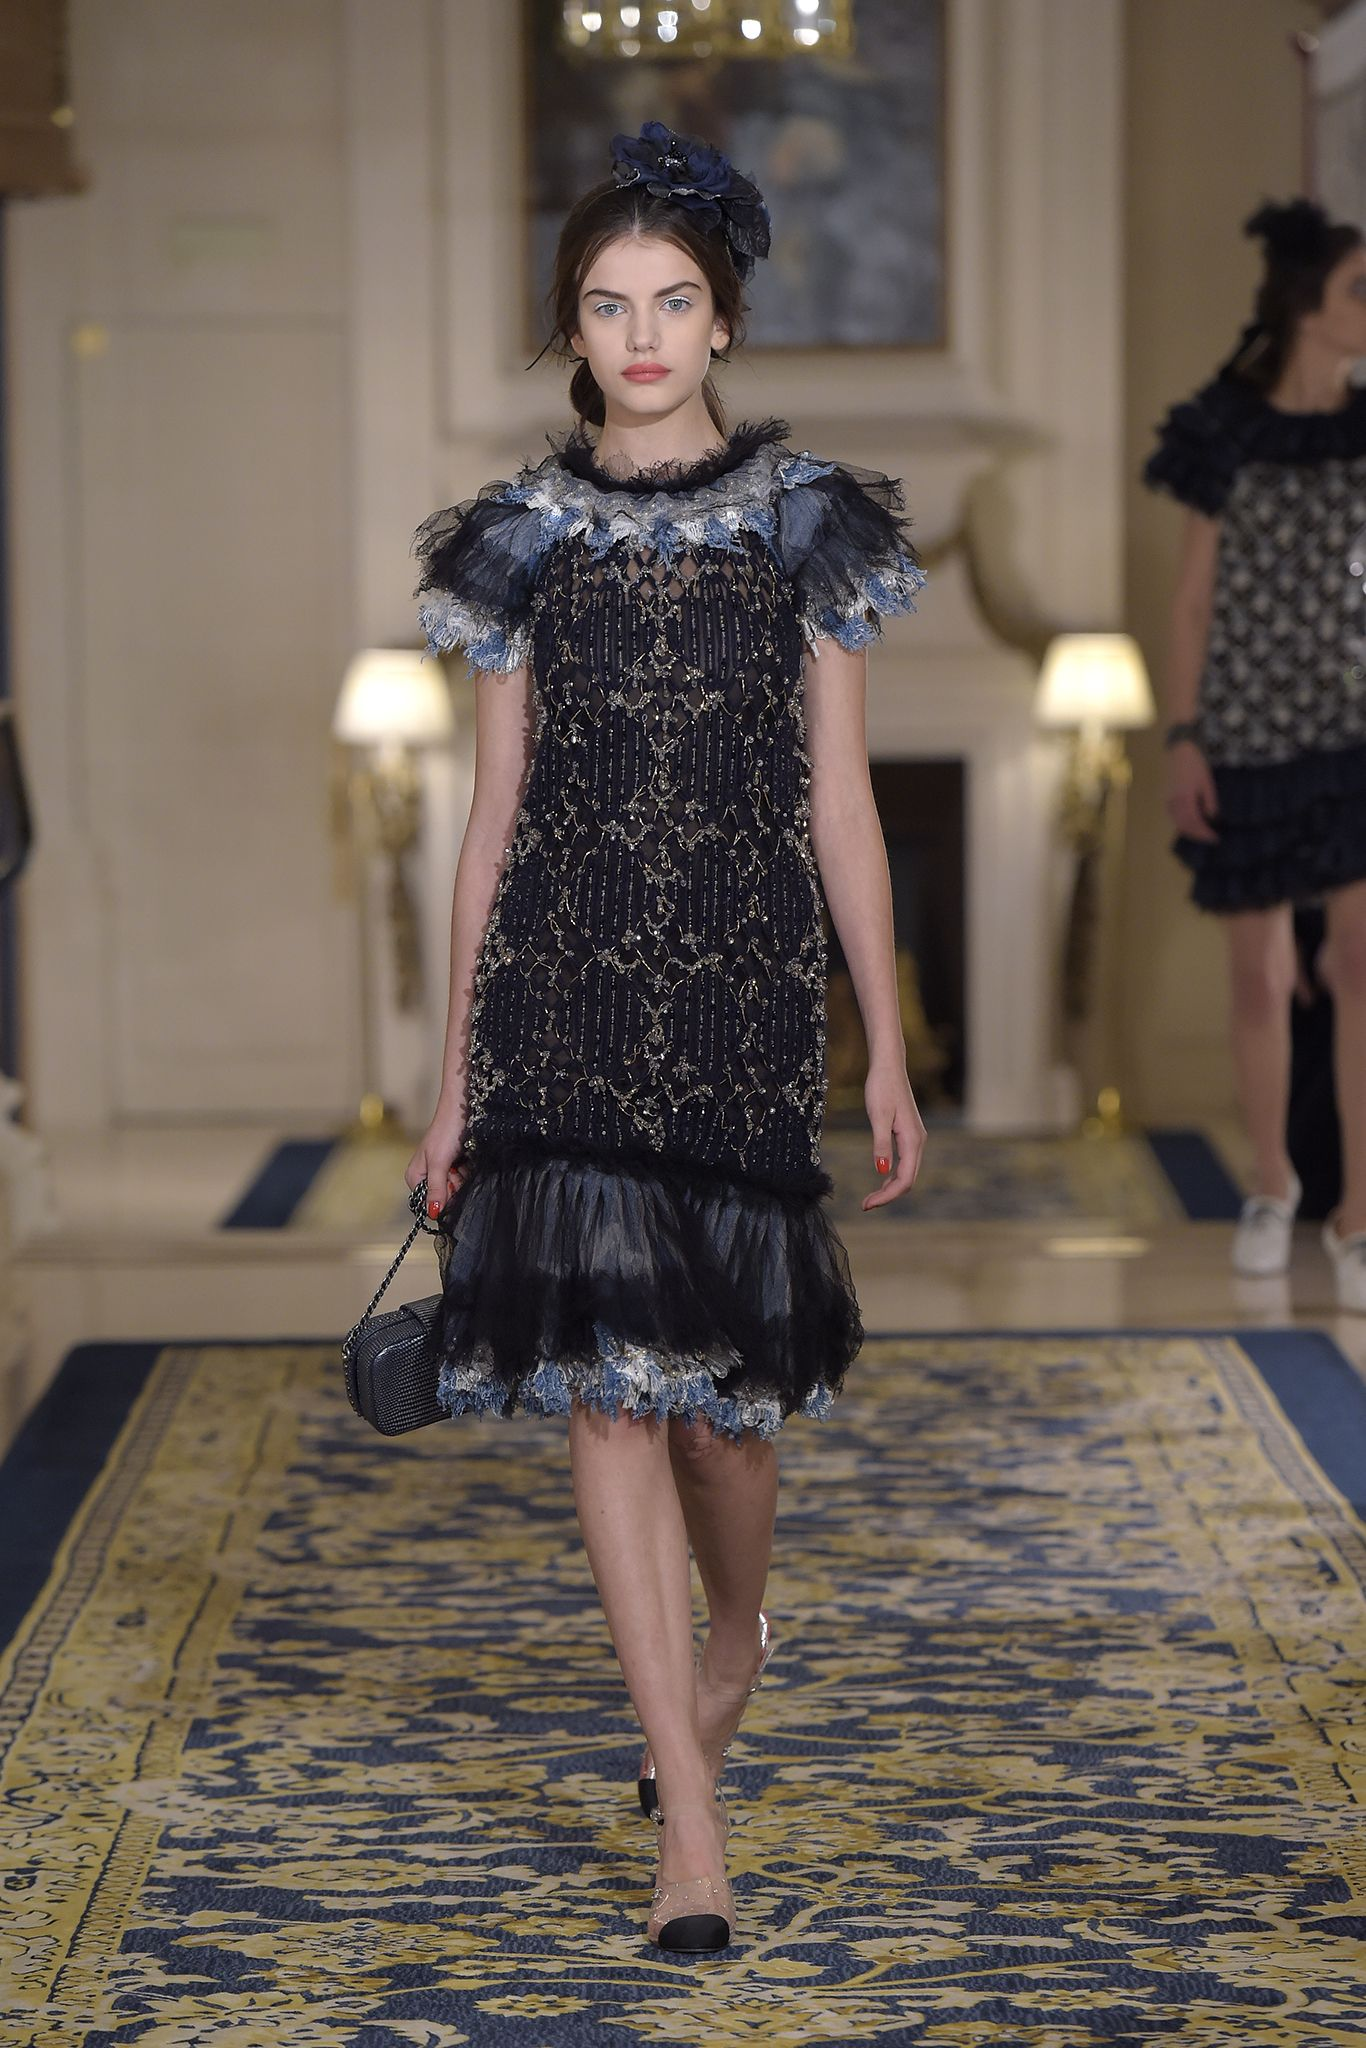 Chanel Métiers d'Art show at the newly reopened Ritz Paris. Look 51